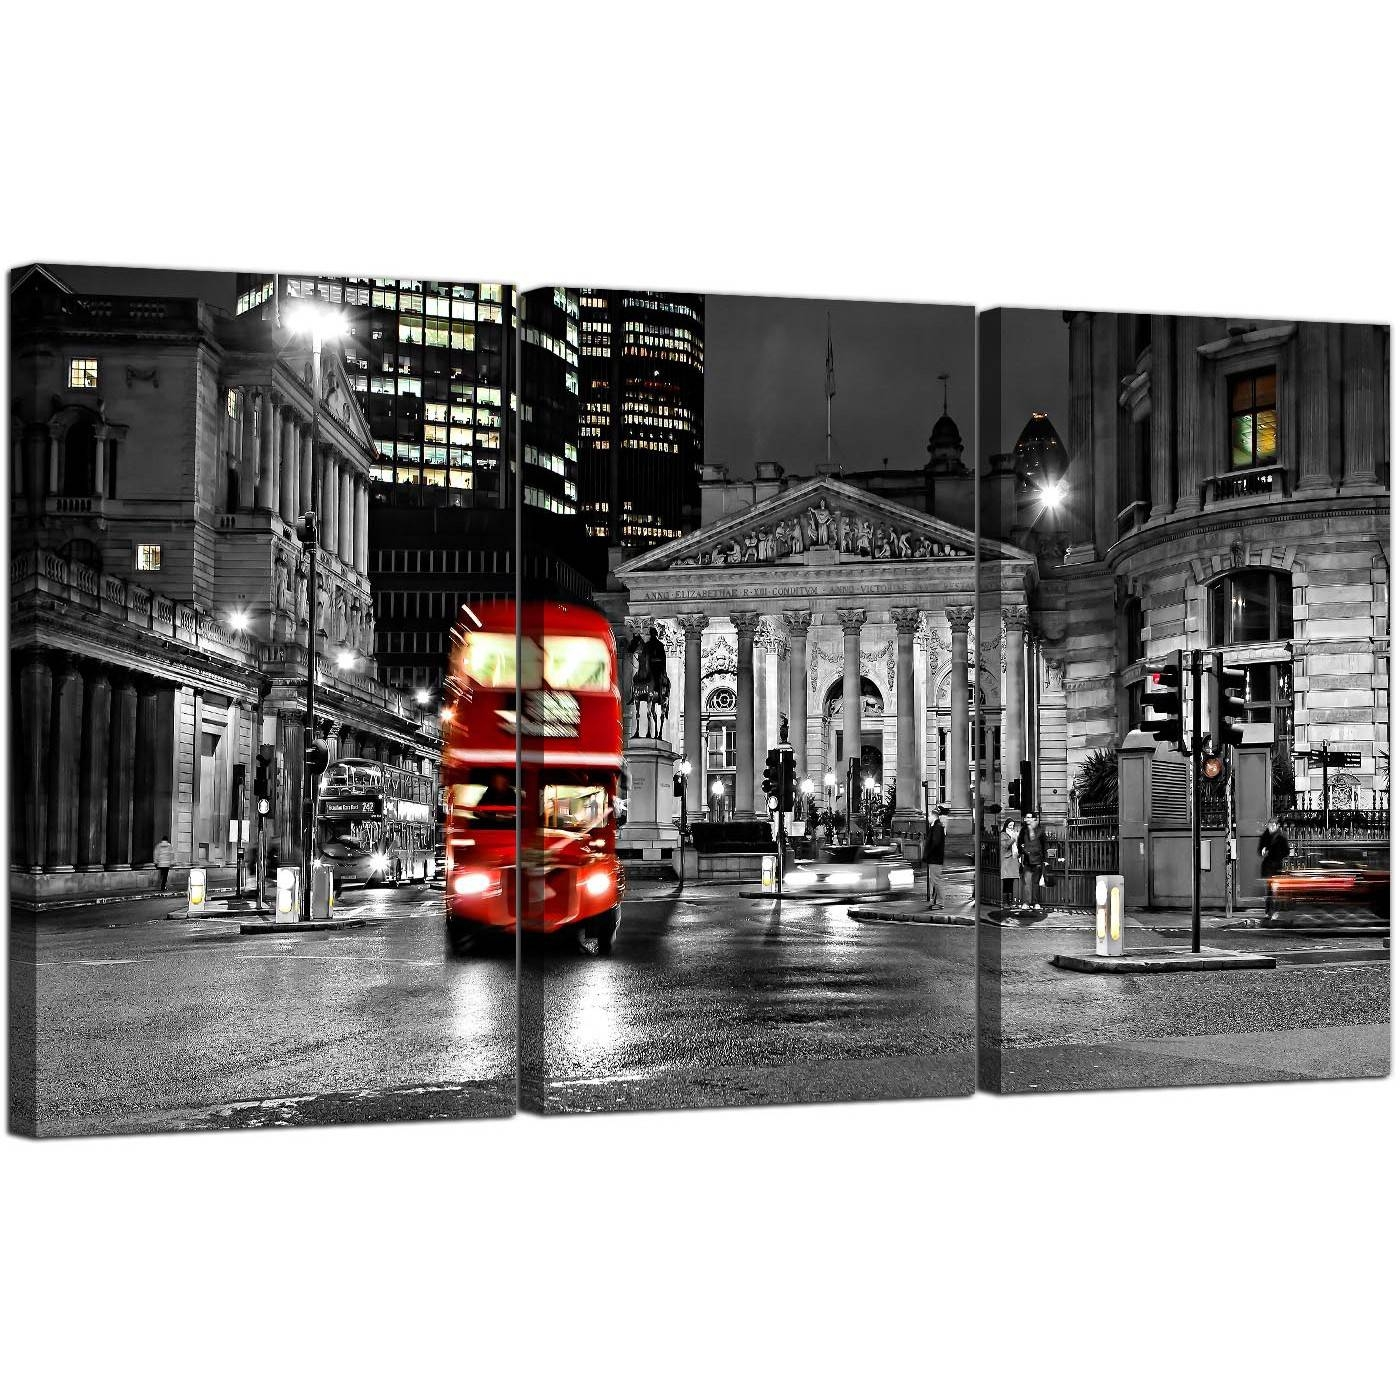 Red London Bus Canvas Wall Art 3 Panel For Your Living Room Intended For Recent Cityscape Canvas Wall Art (View 9 of 20)